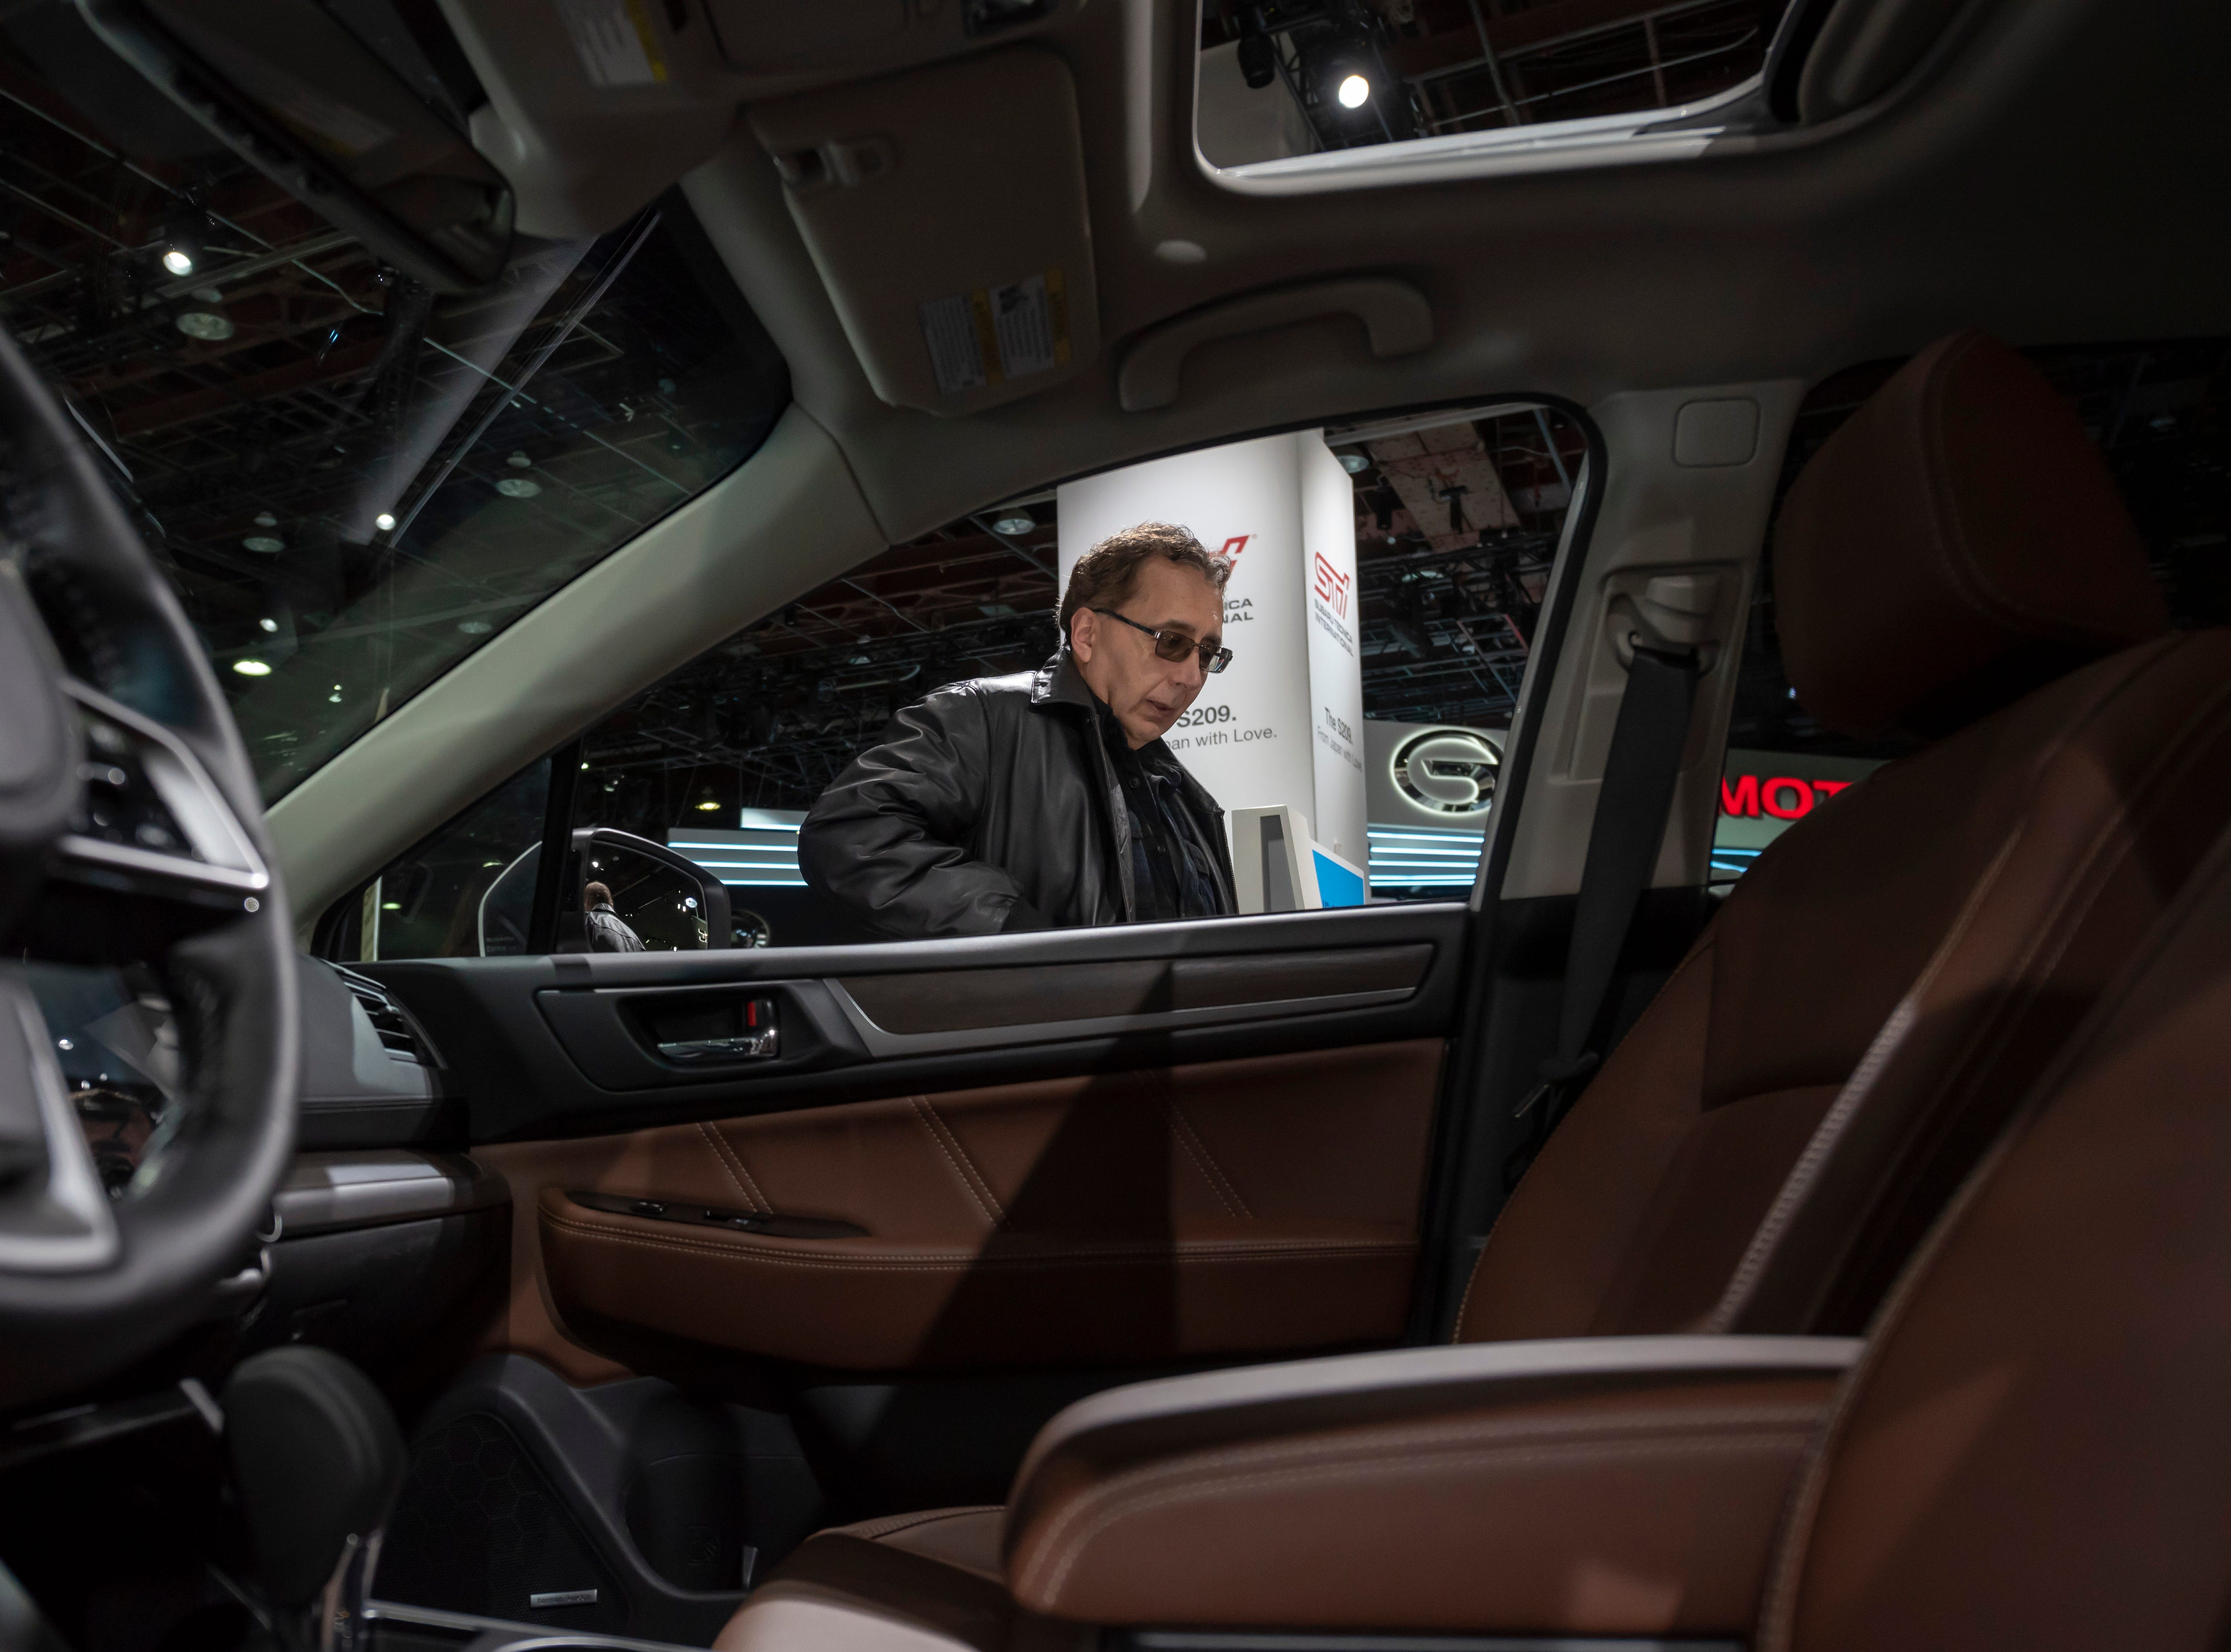 Judge Felix Fulicea of Detroit checks out the interior of the 2019 Subaru Outback.